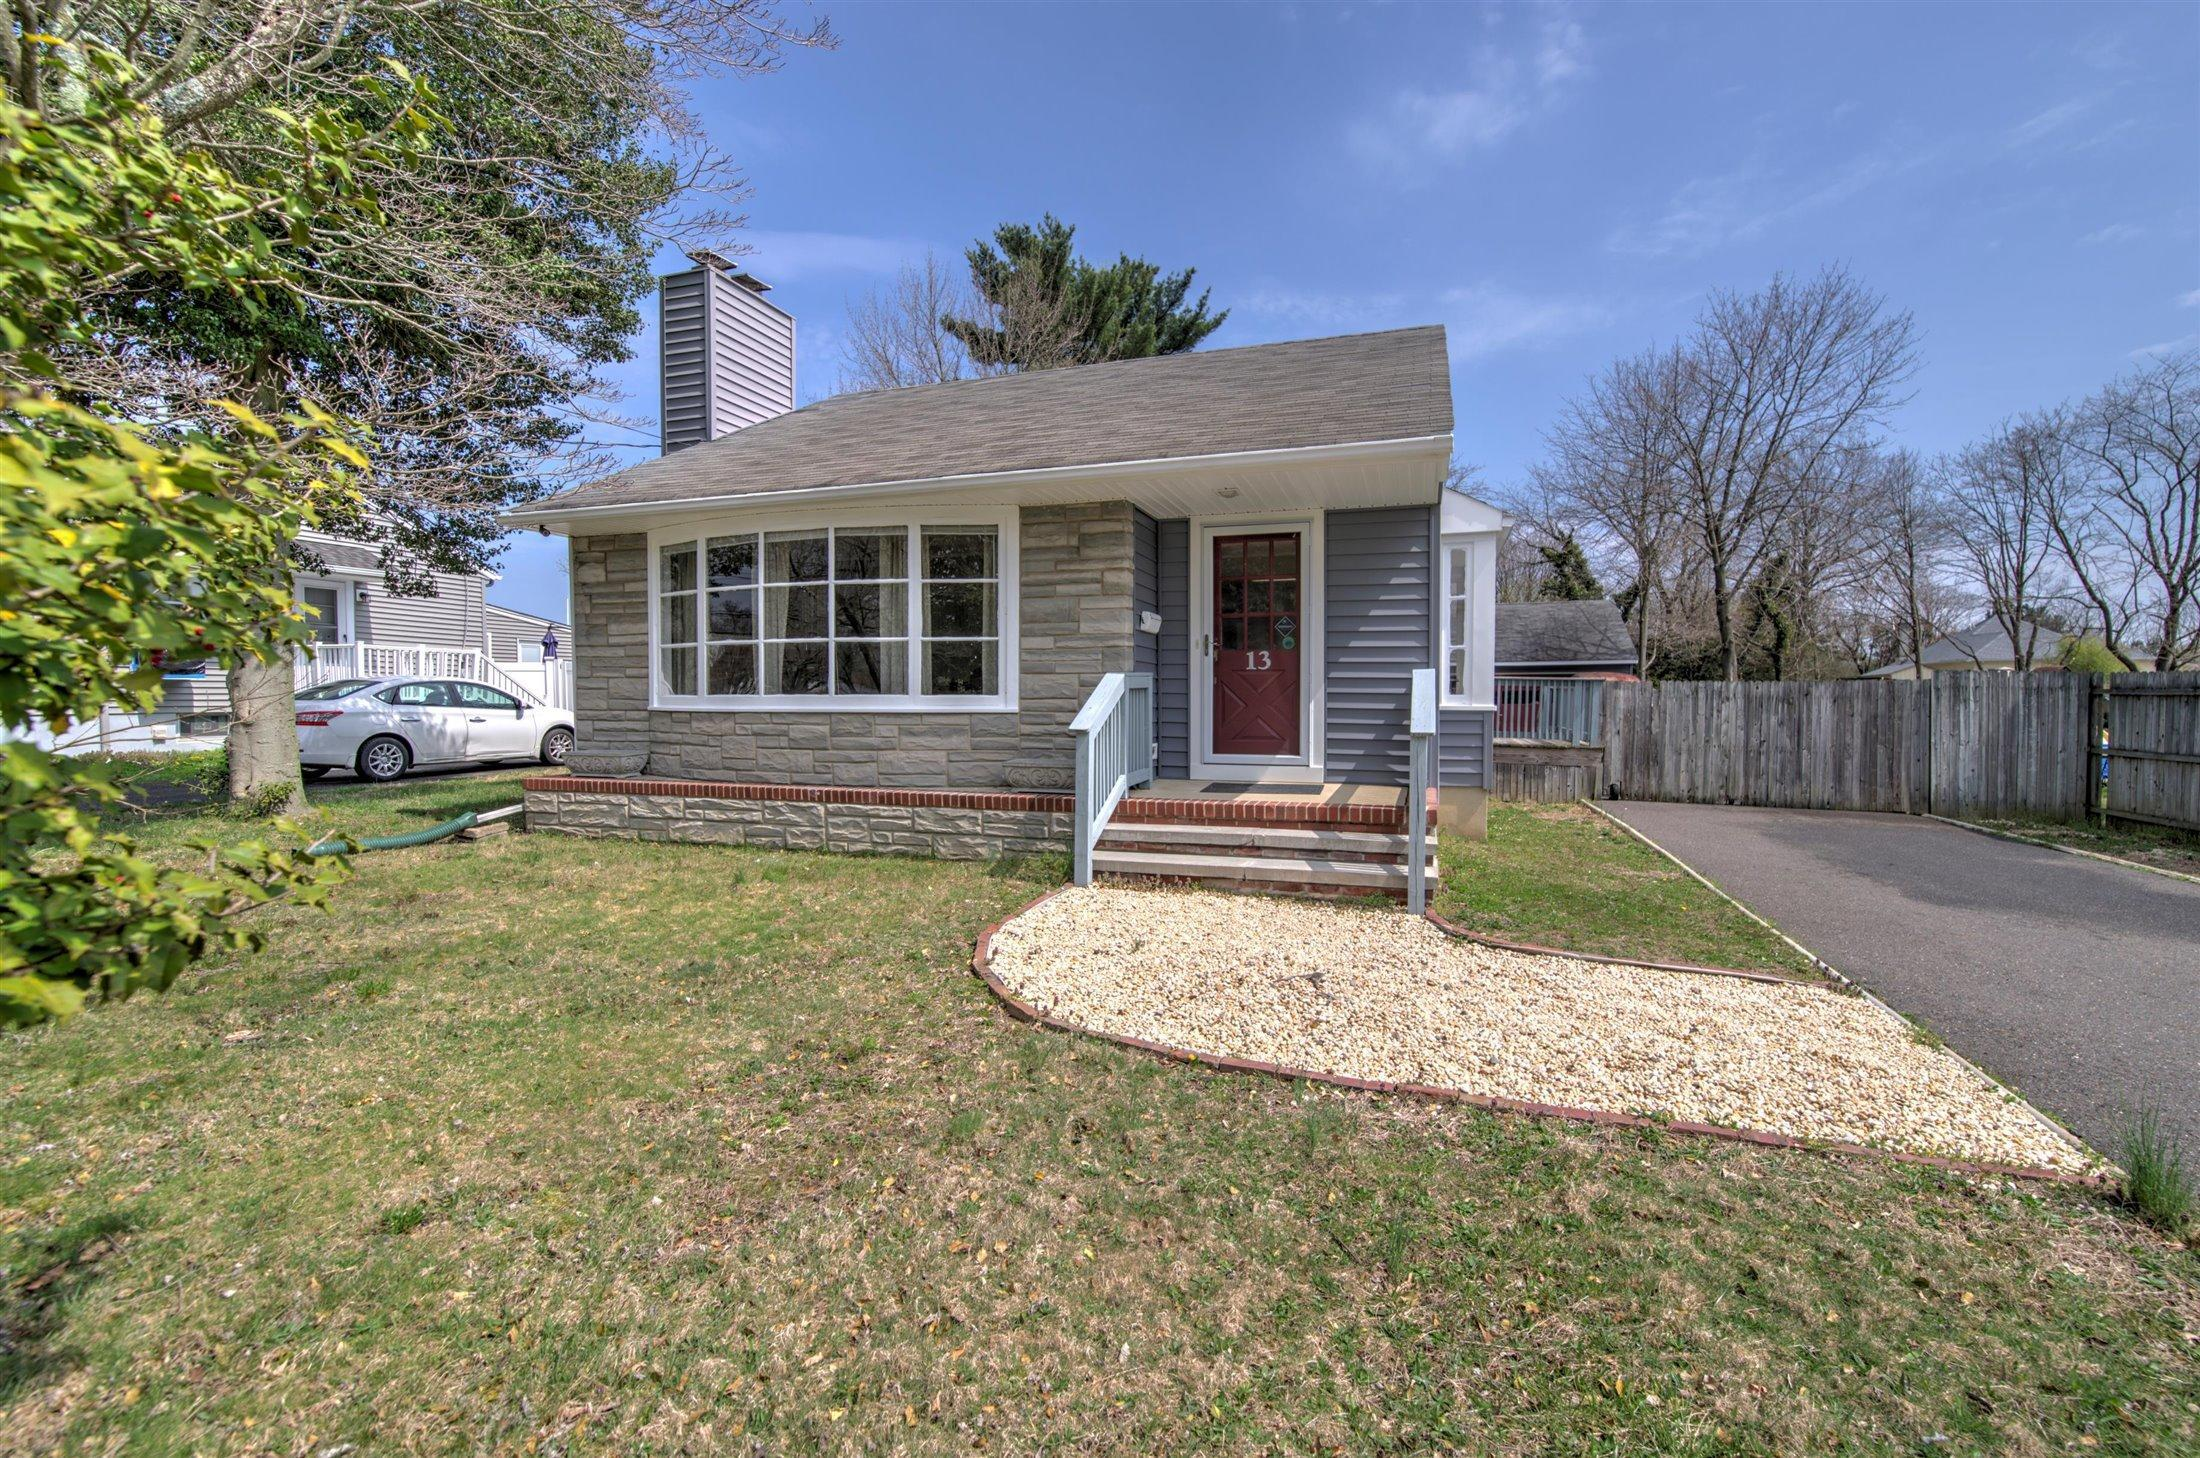 13 King Street, Toms River, New Jersey 08753, 3 Bedrooms Bedrooms, ,2 BathroomsBathrooms,Single Family,For Sale,13 King Street,1,22110404